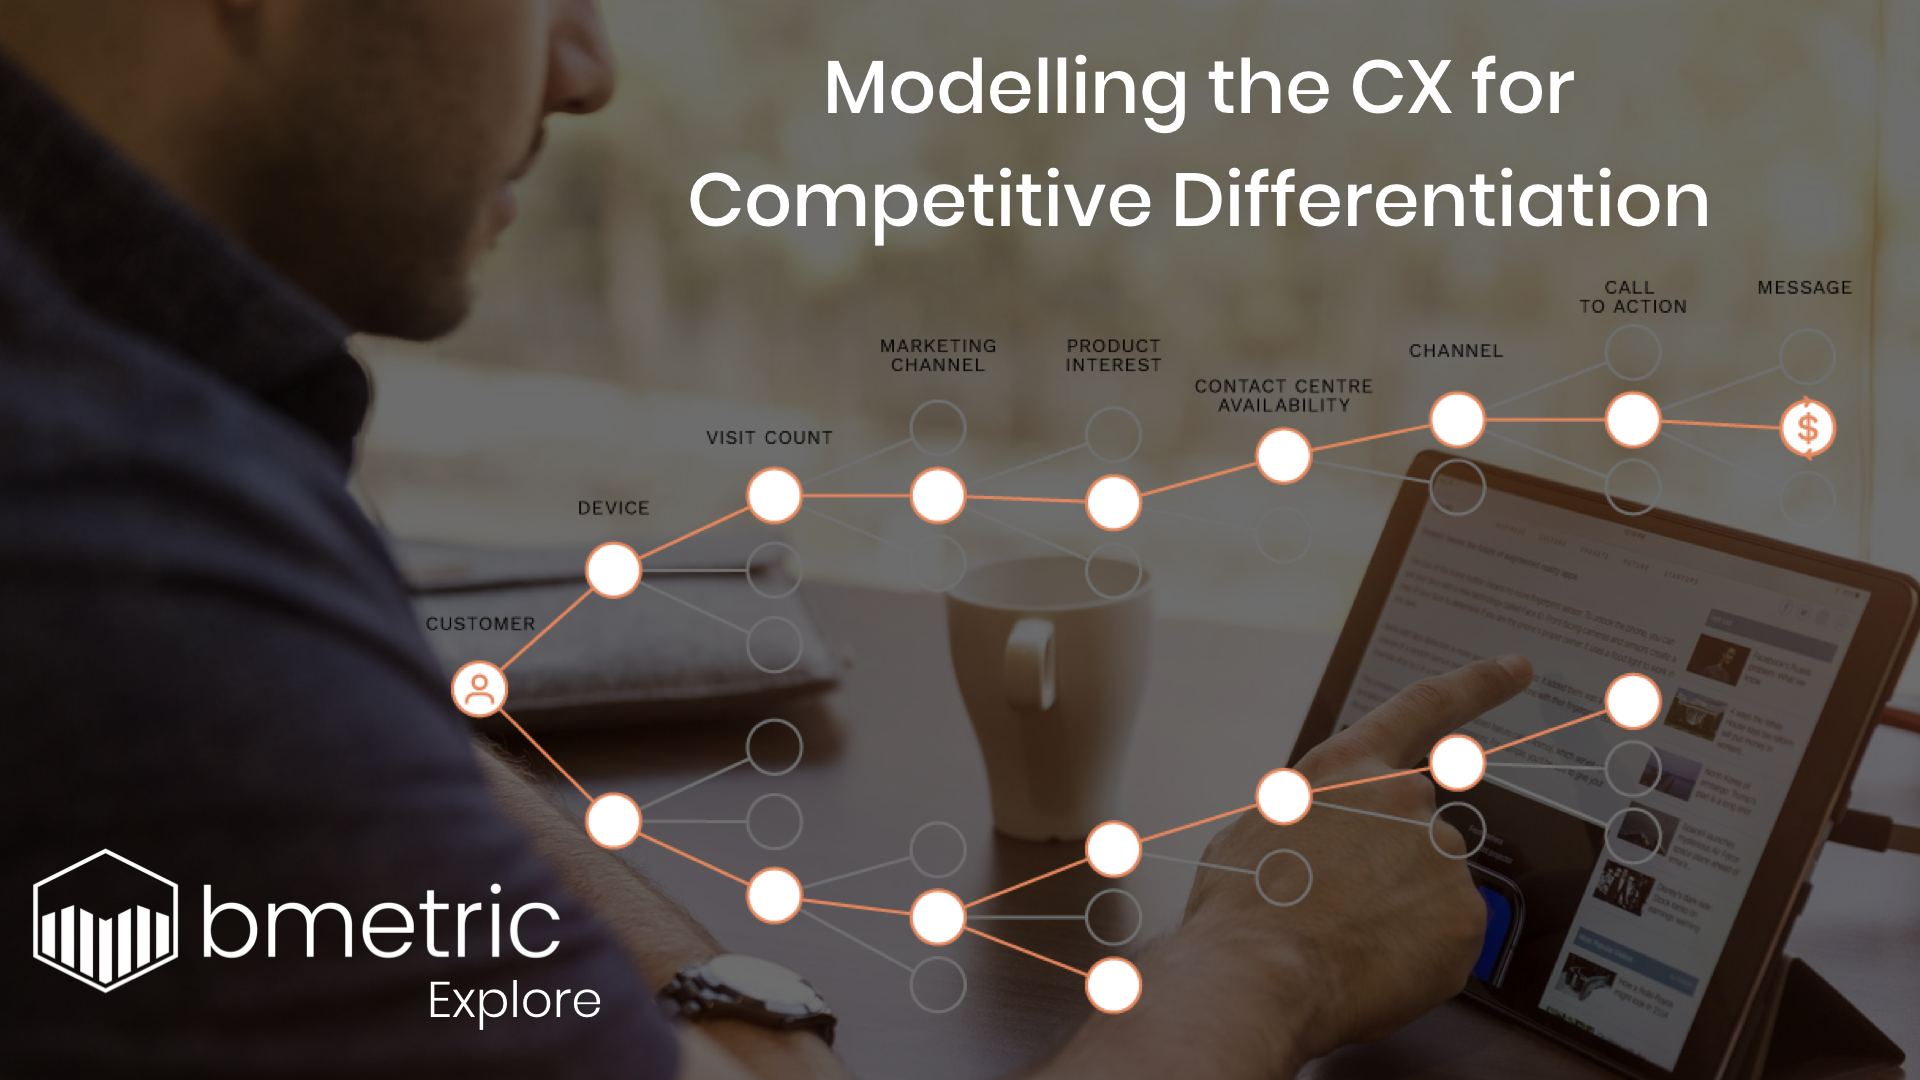 Modelling the CX for Competitive Differentiation